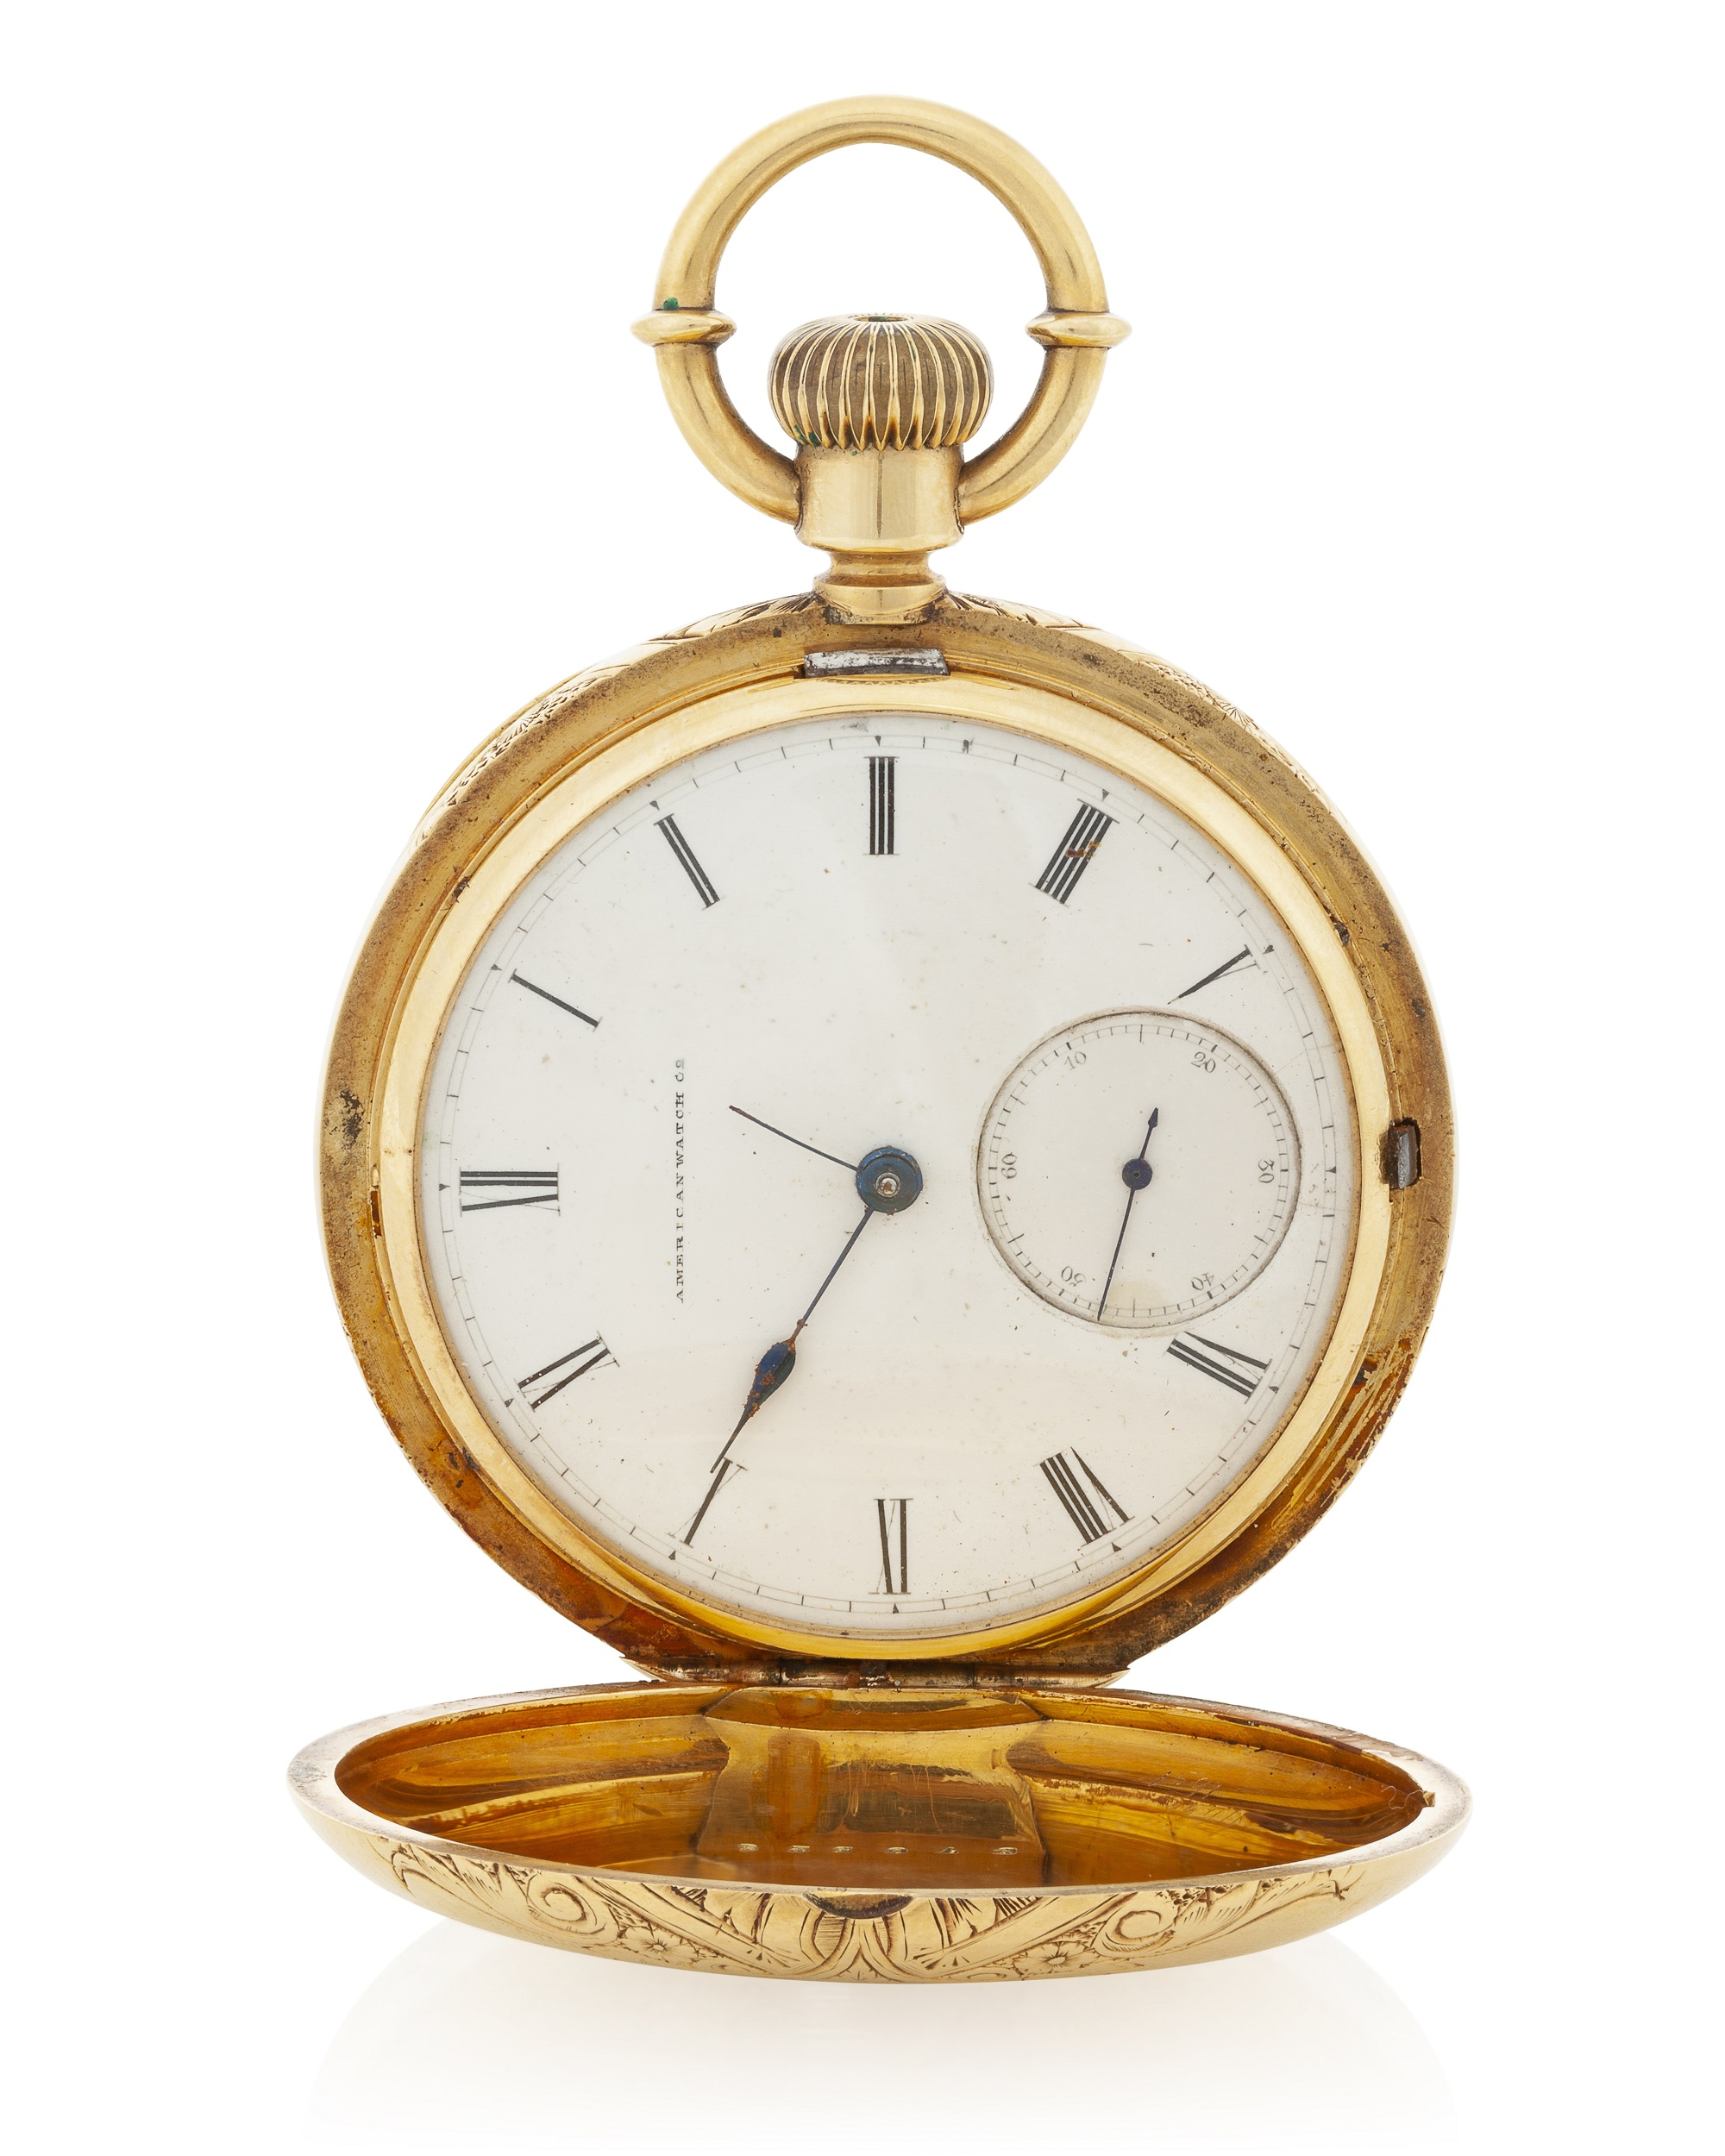 An American Watch Co. hunter's case pocket watch